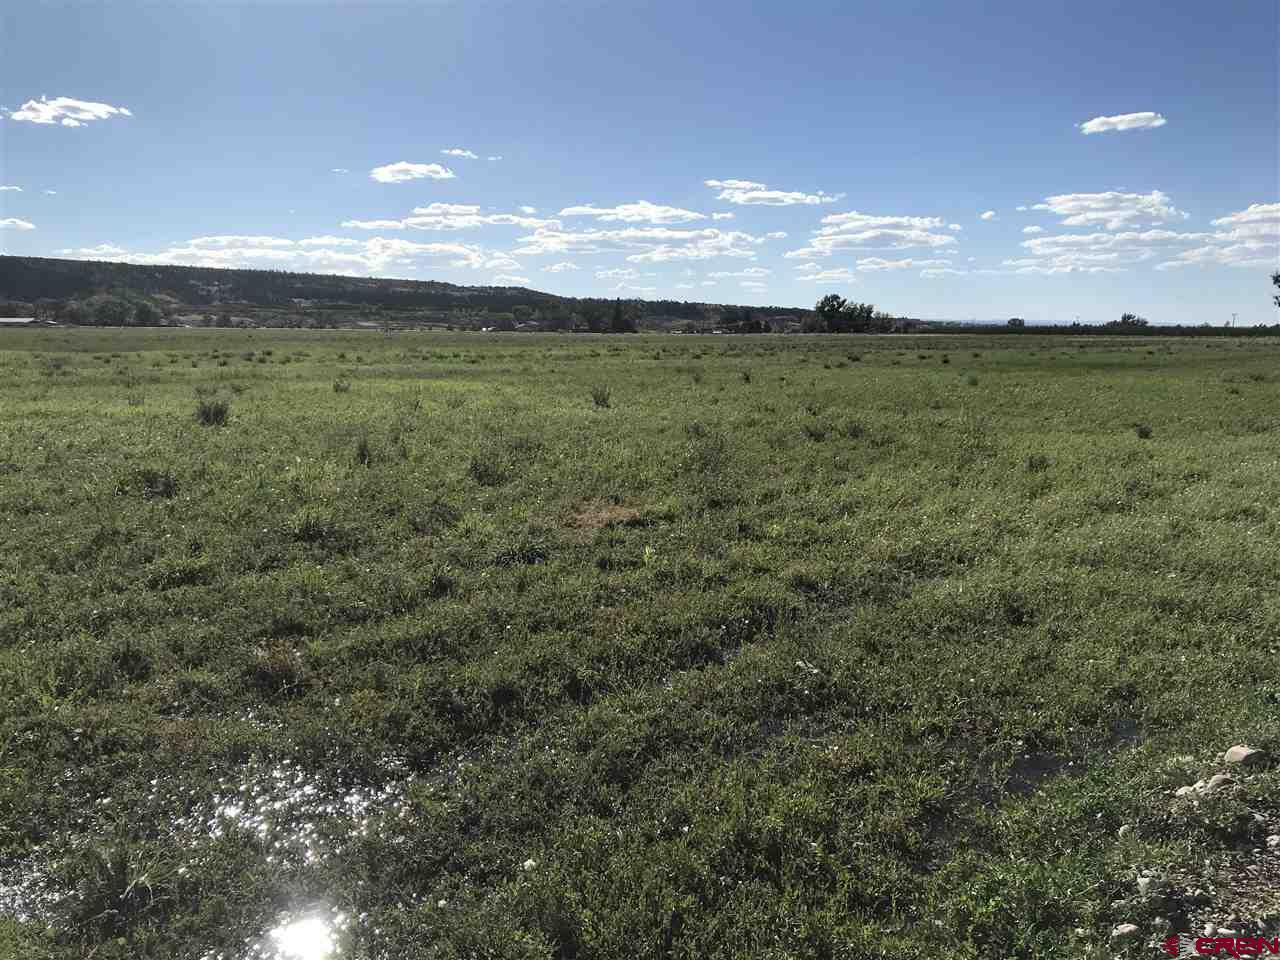 TBD (Lot 1) Trout Road, Montrose, Colorado 81403, ,Lots And Land,For Sale,TBD (Lot 1) Trout Road,779114